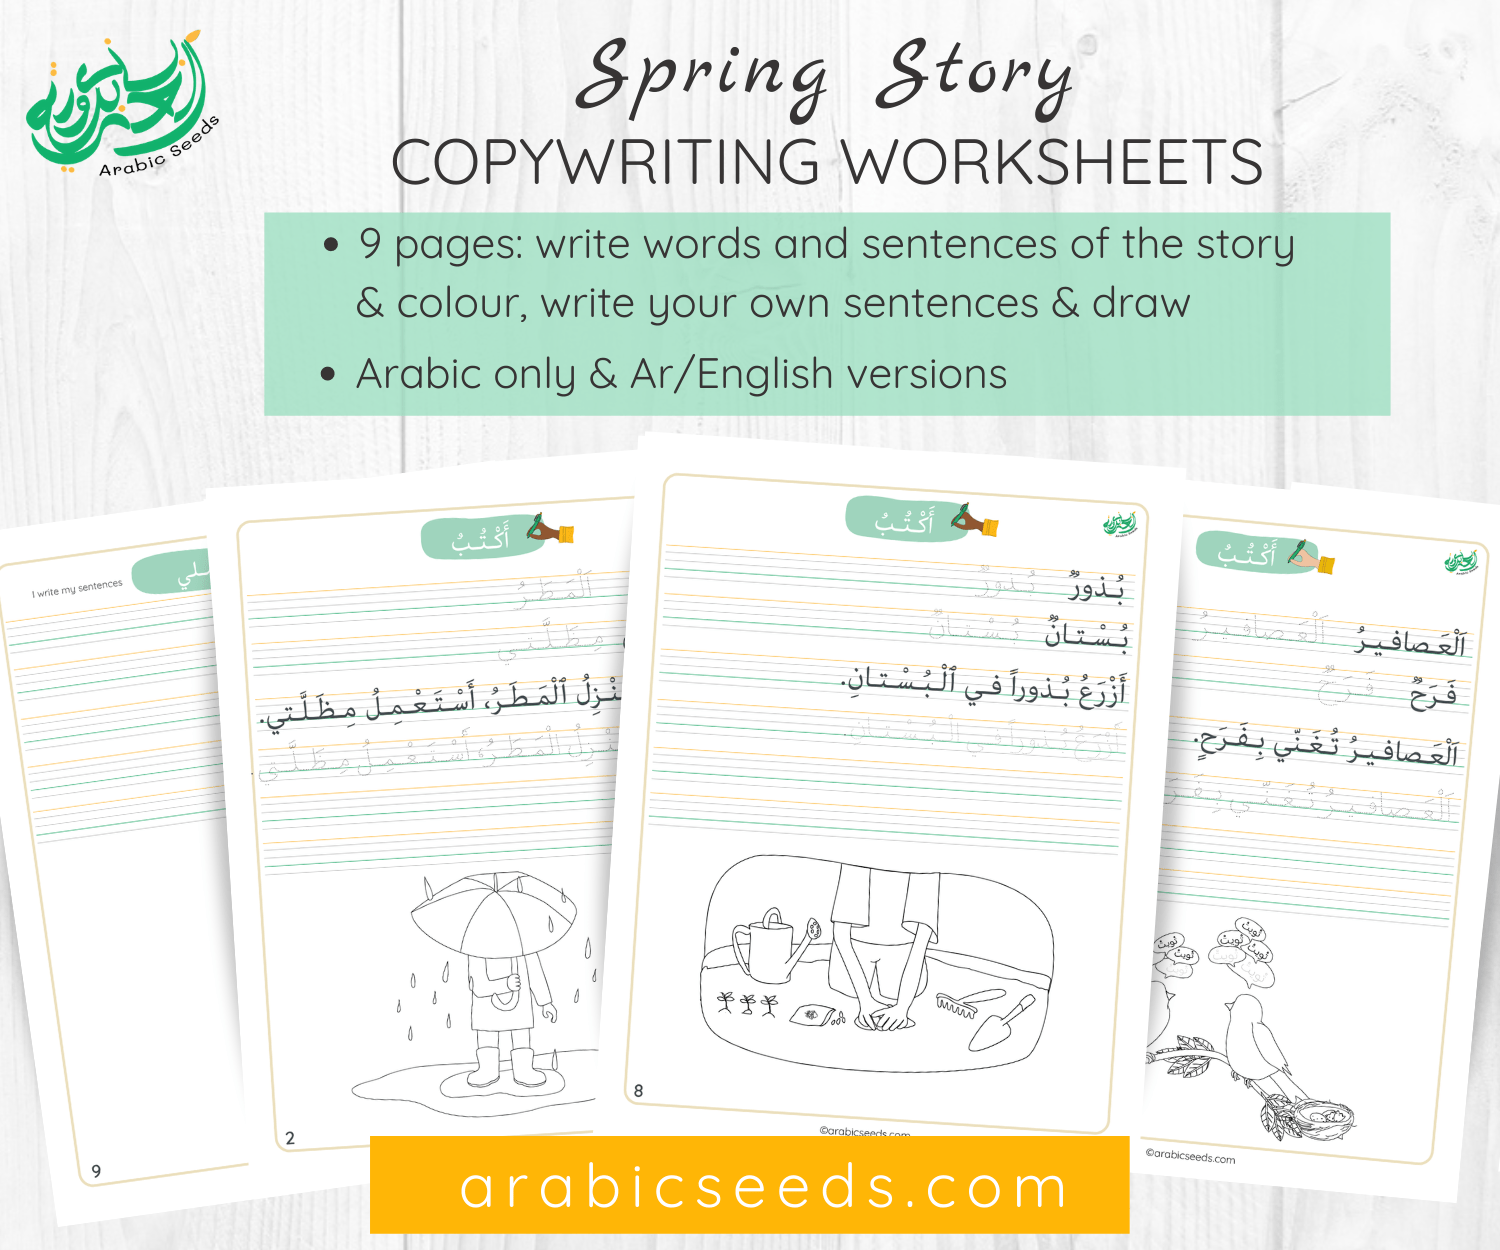 Arabic Spring story Copywriting Worksheets - Printable Resource - Arabic Seeds